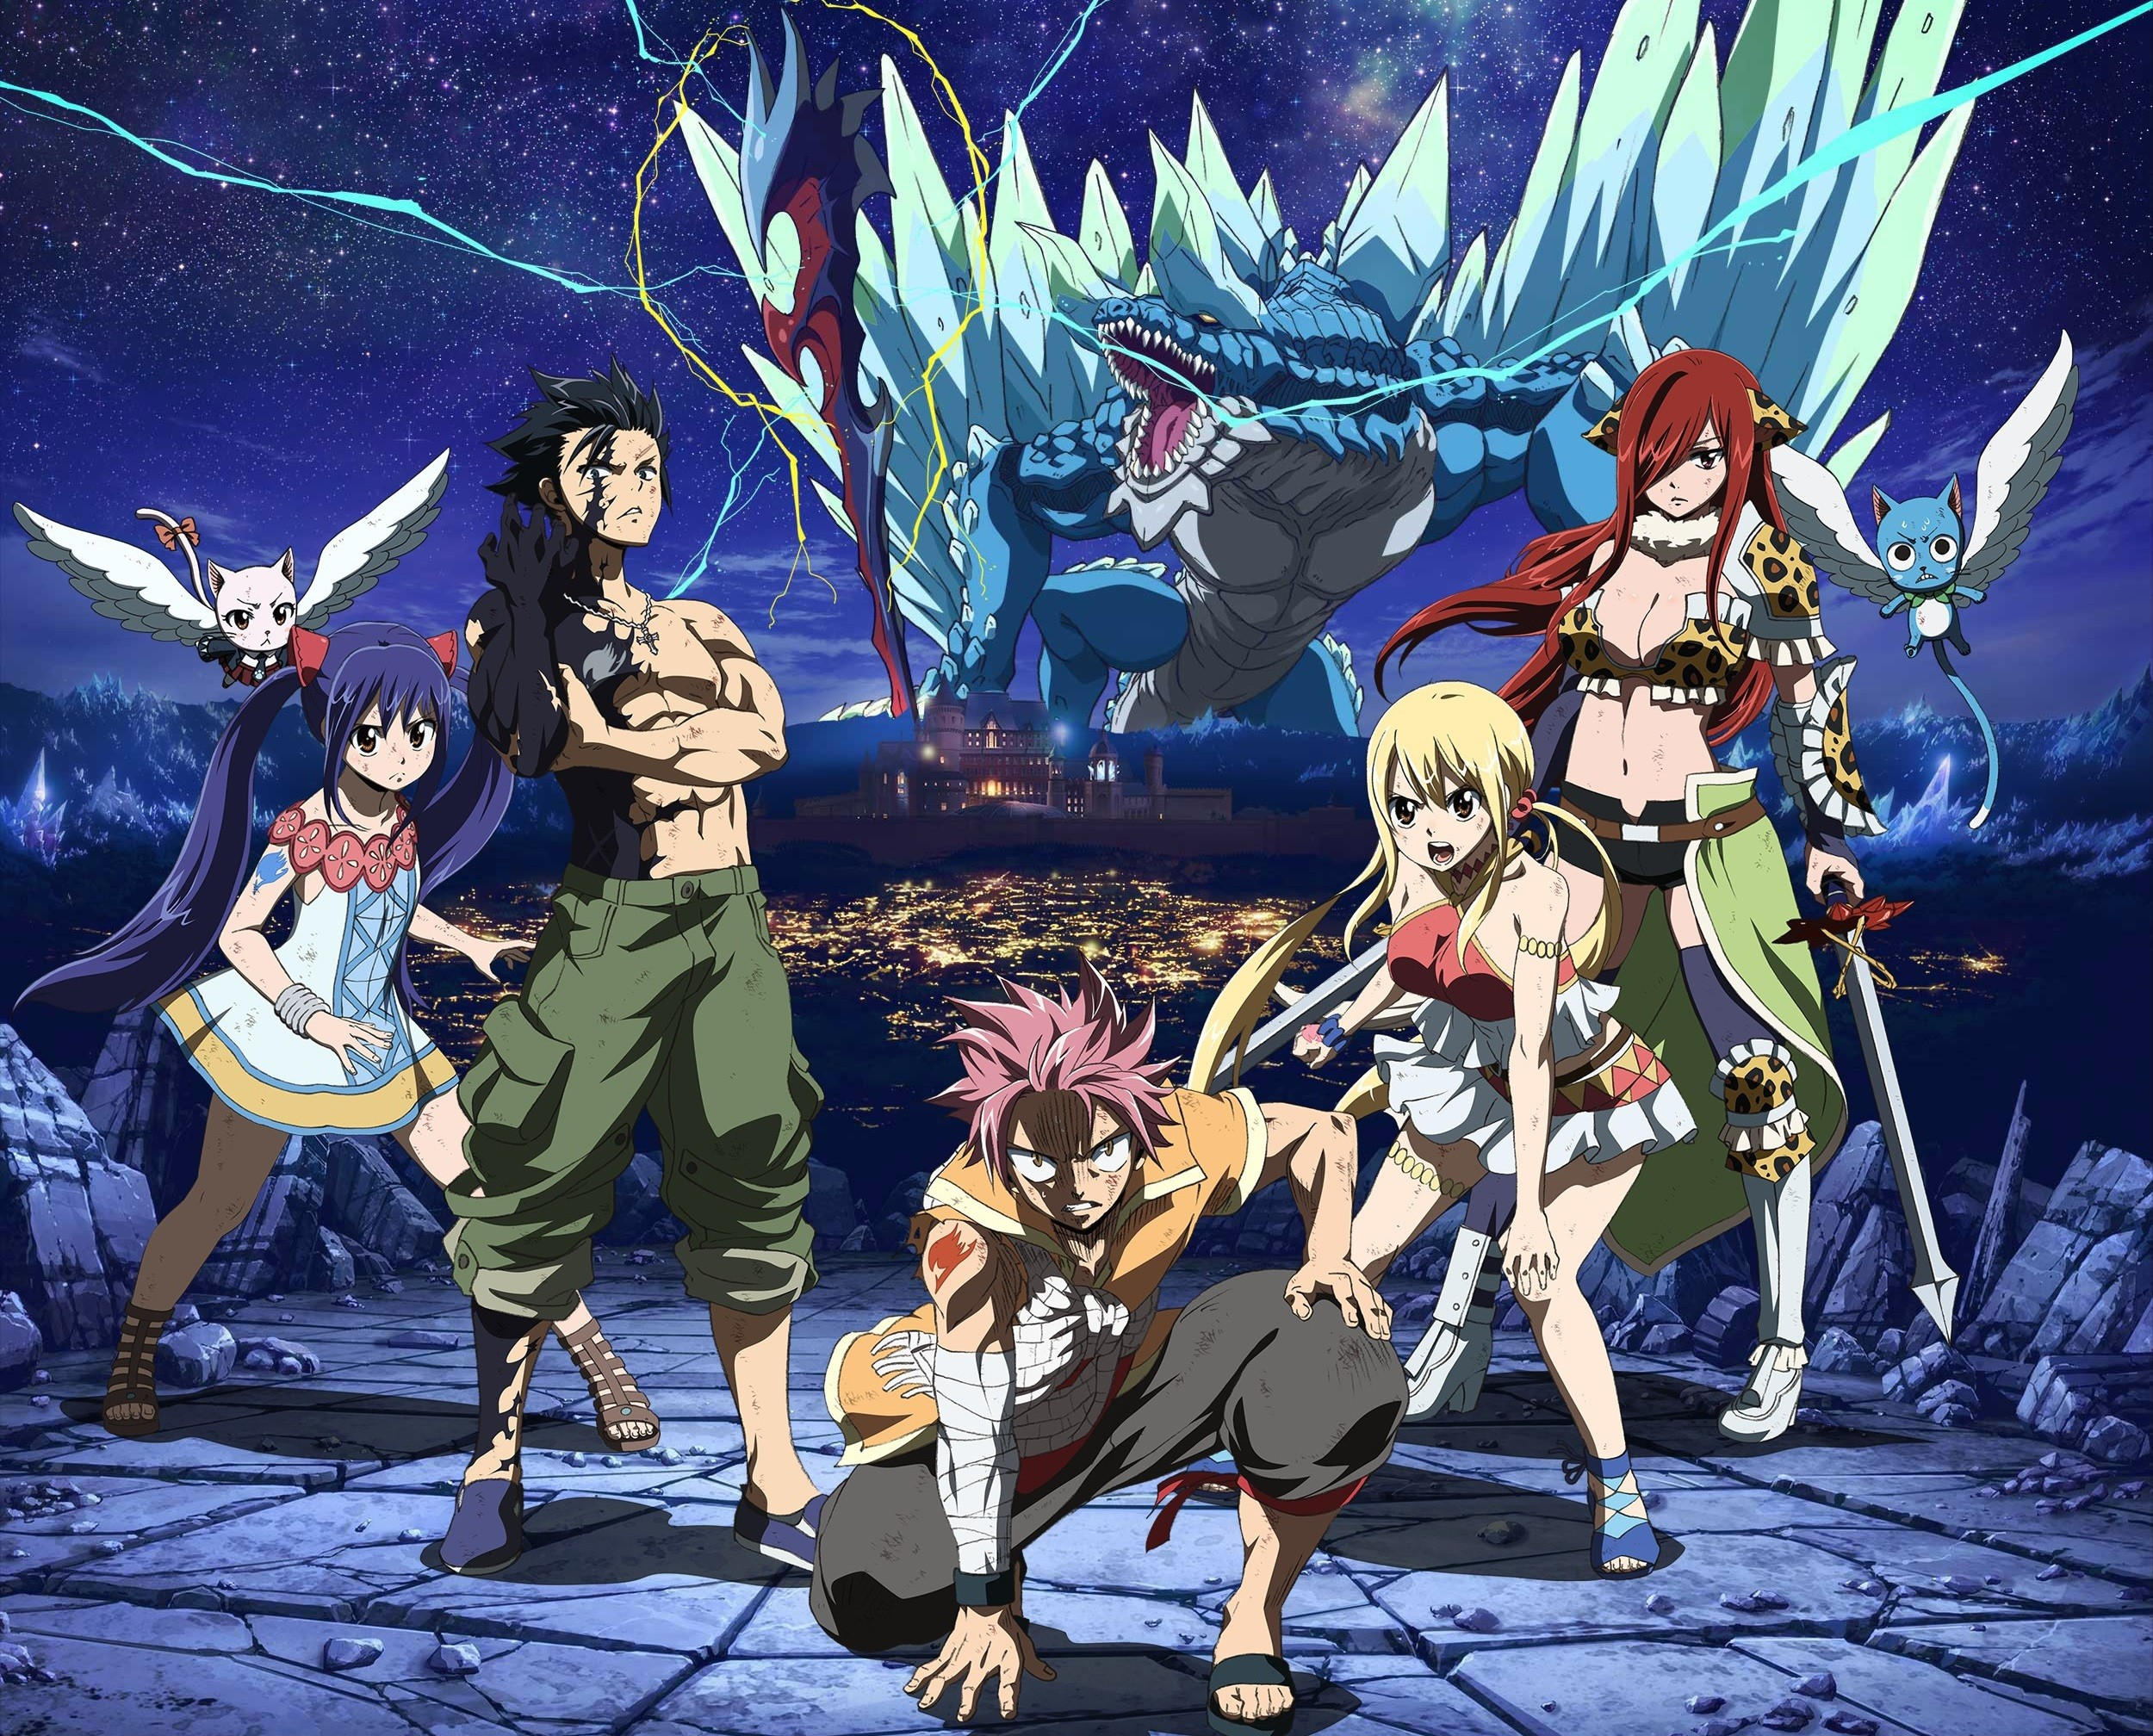 2500x2016 Natsu Dragneel, Wendy Marvell, Lucy Heartfilia, Erza Scarlet, Fairy Tail, Gray  Fullbuster wallpaper and background